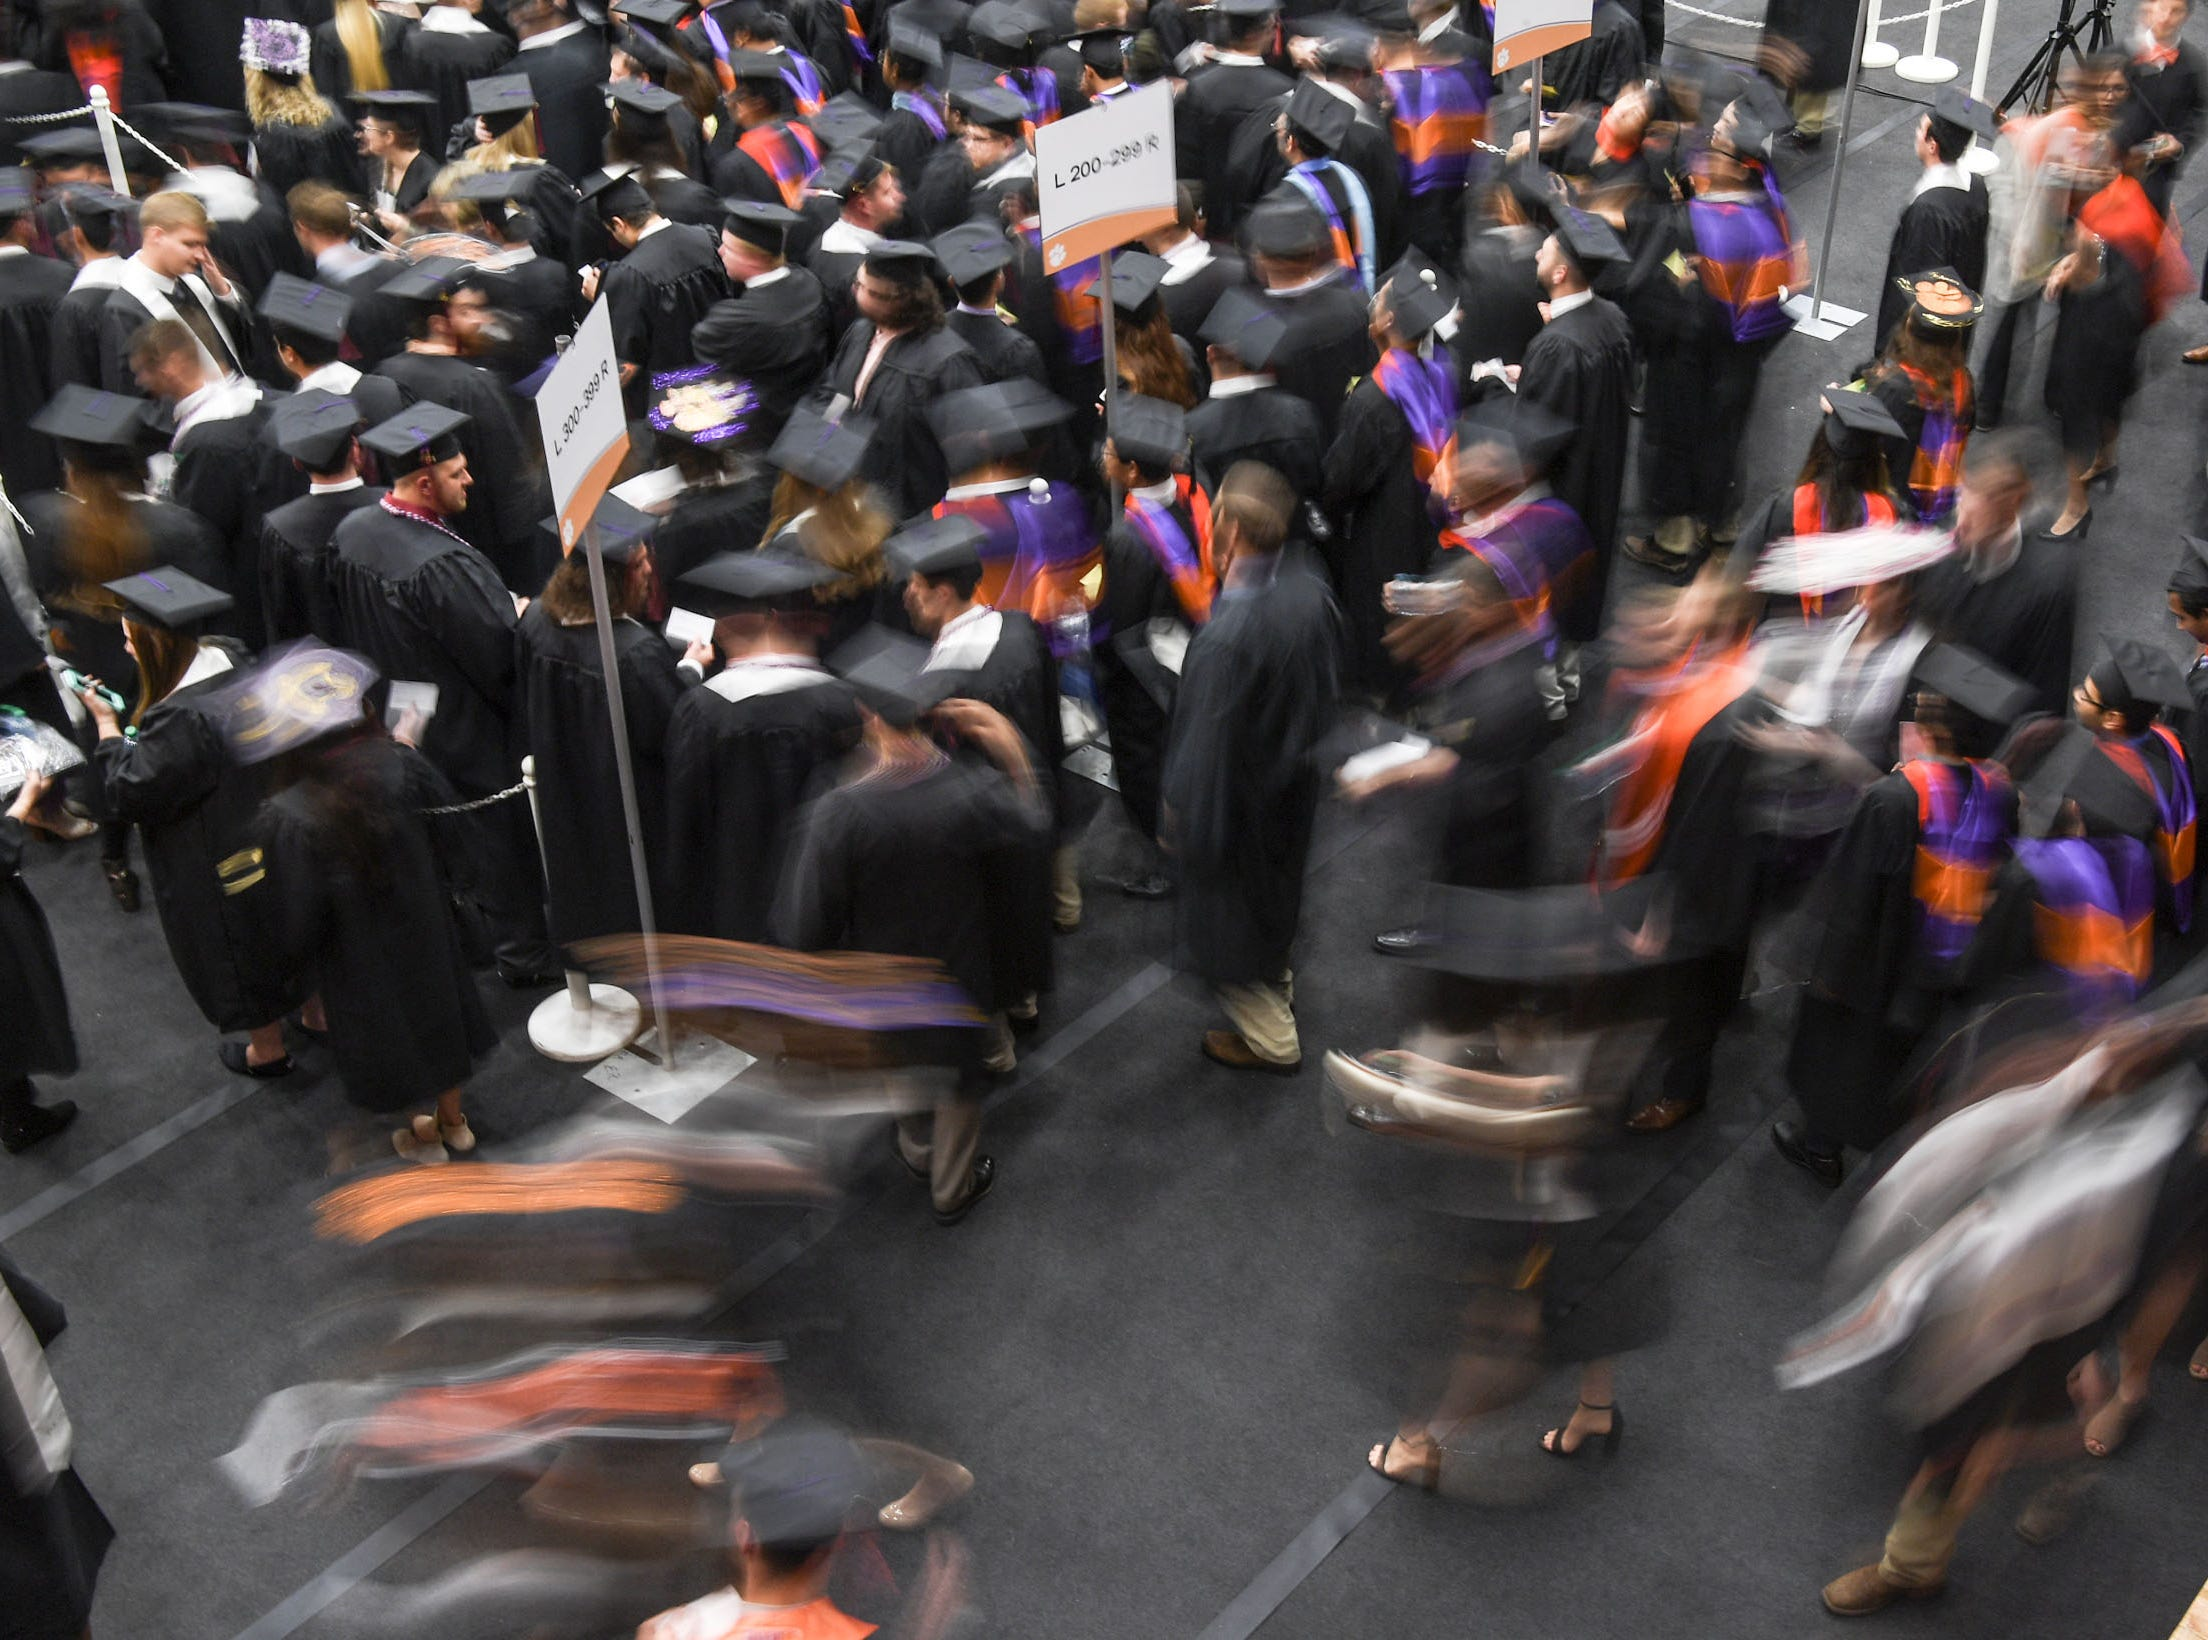 Graduates gather in a back room area before the Clemson University morning graduation ceremony Thursday morning in Littlejohn Coliseum in Clemson.